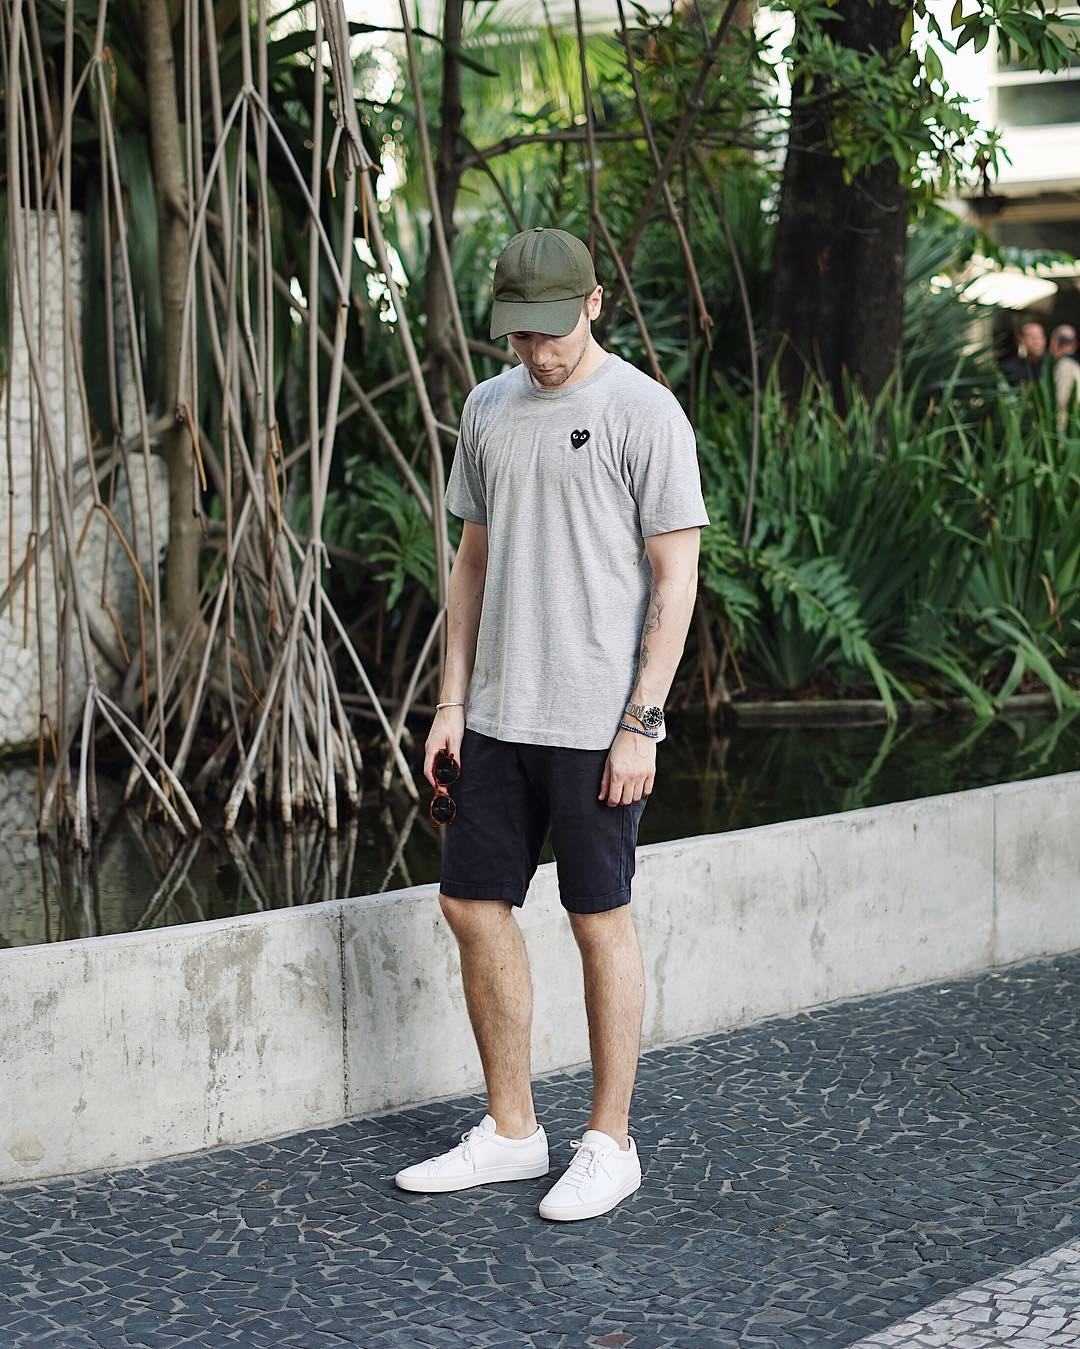 This Is How You Should Wear Shorts This Summer #summer #streetstyle #casualstyle #mensfashion